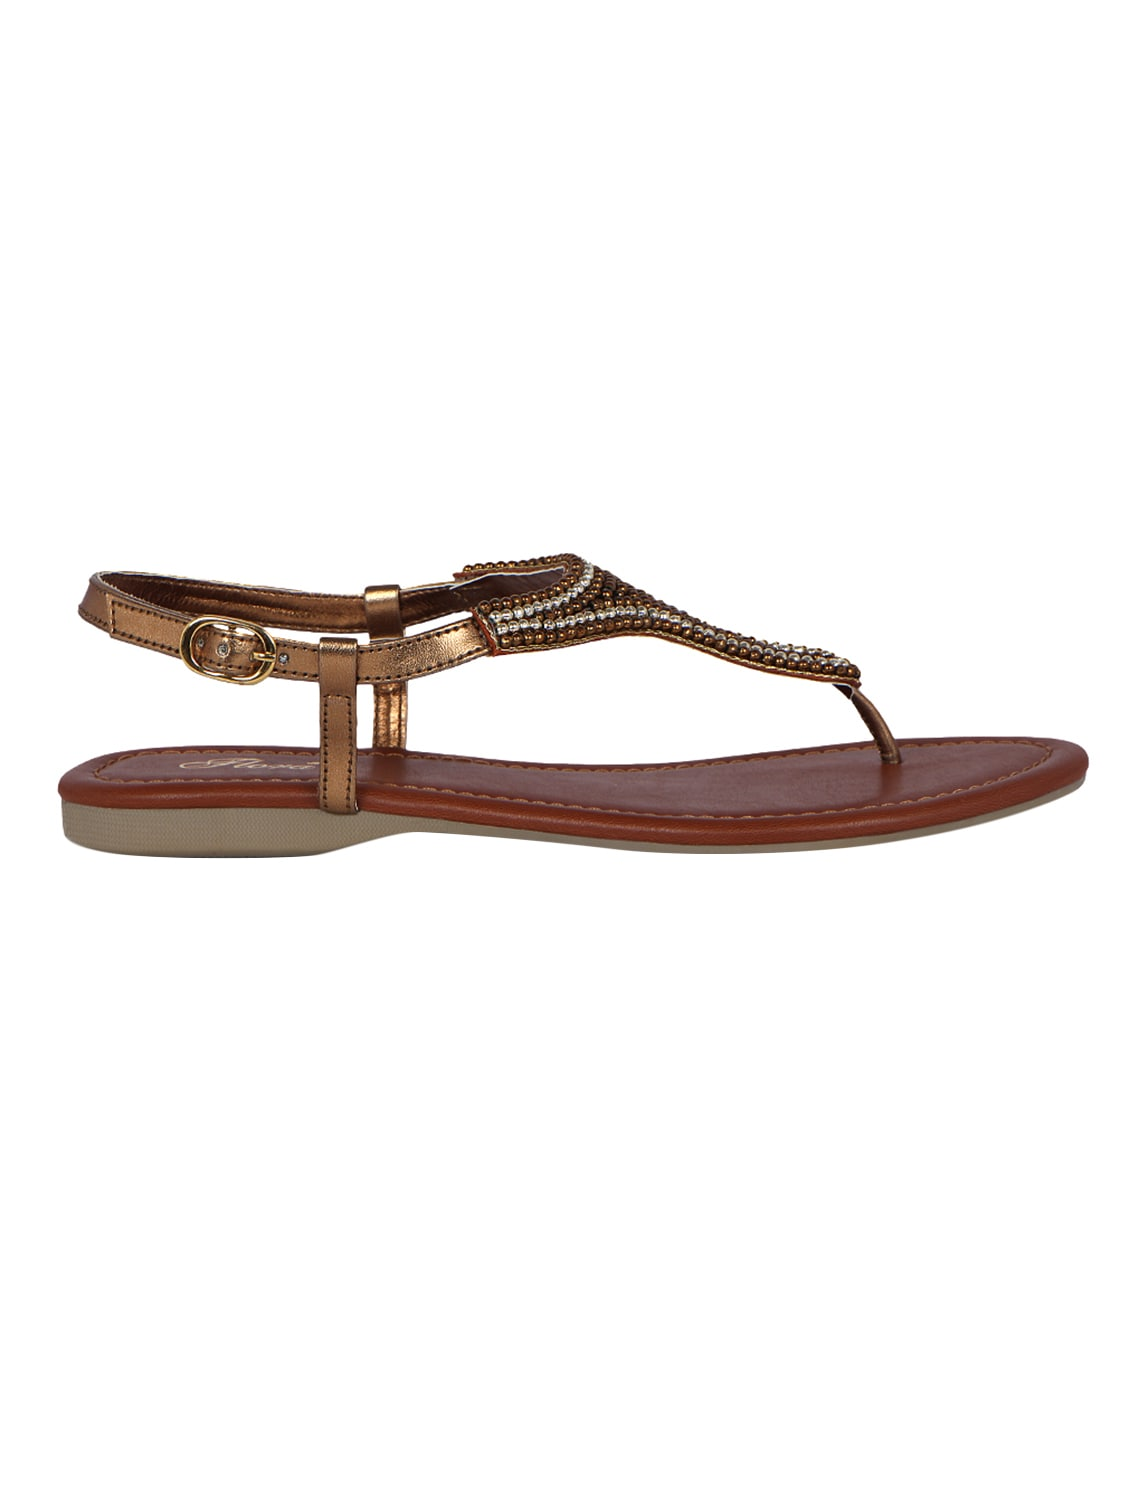 519de08a5 Buy Bronze Faux Leather Back Strap Sandals for Women from Flora for ₹1166  at 27% off